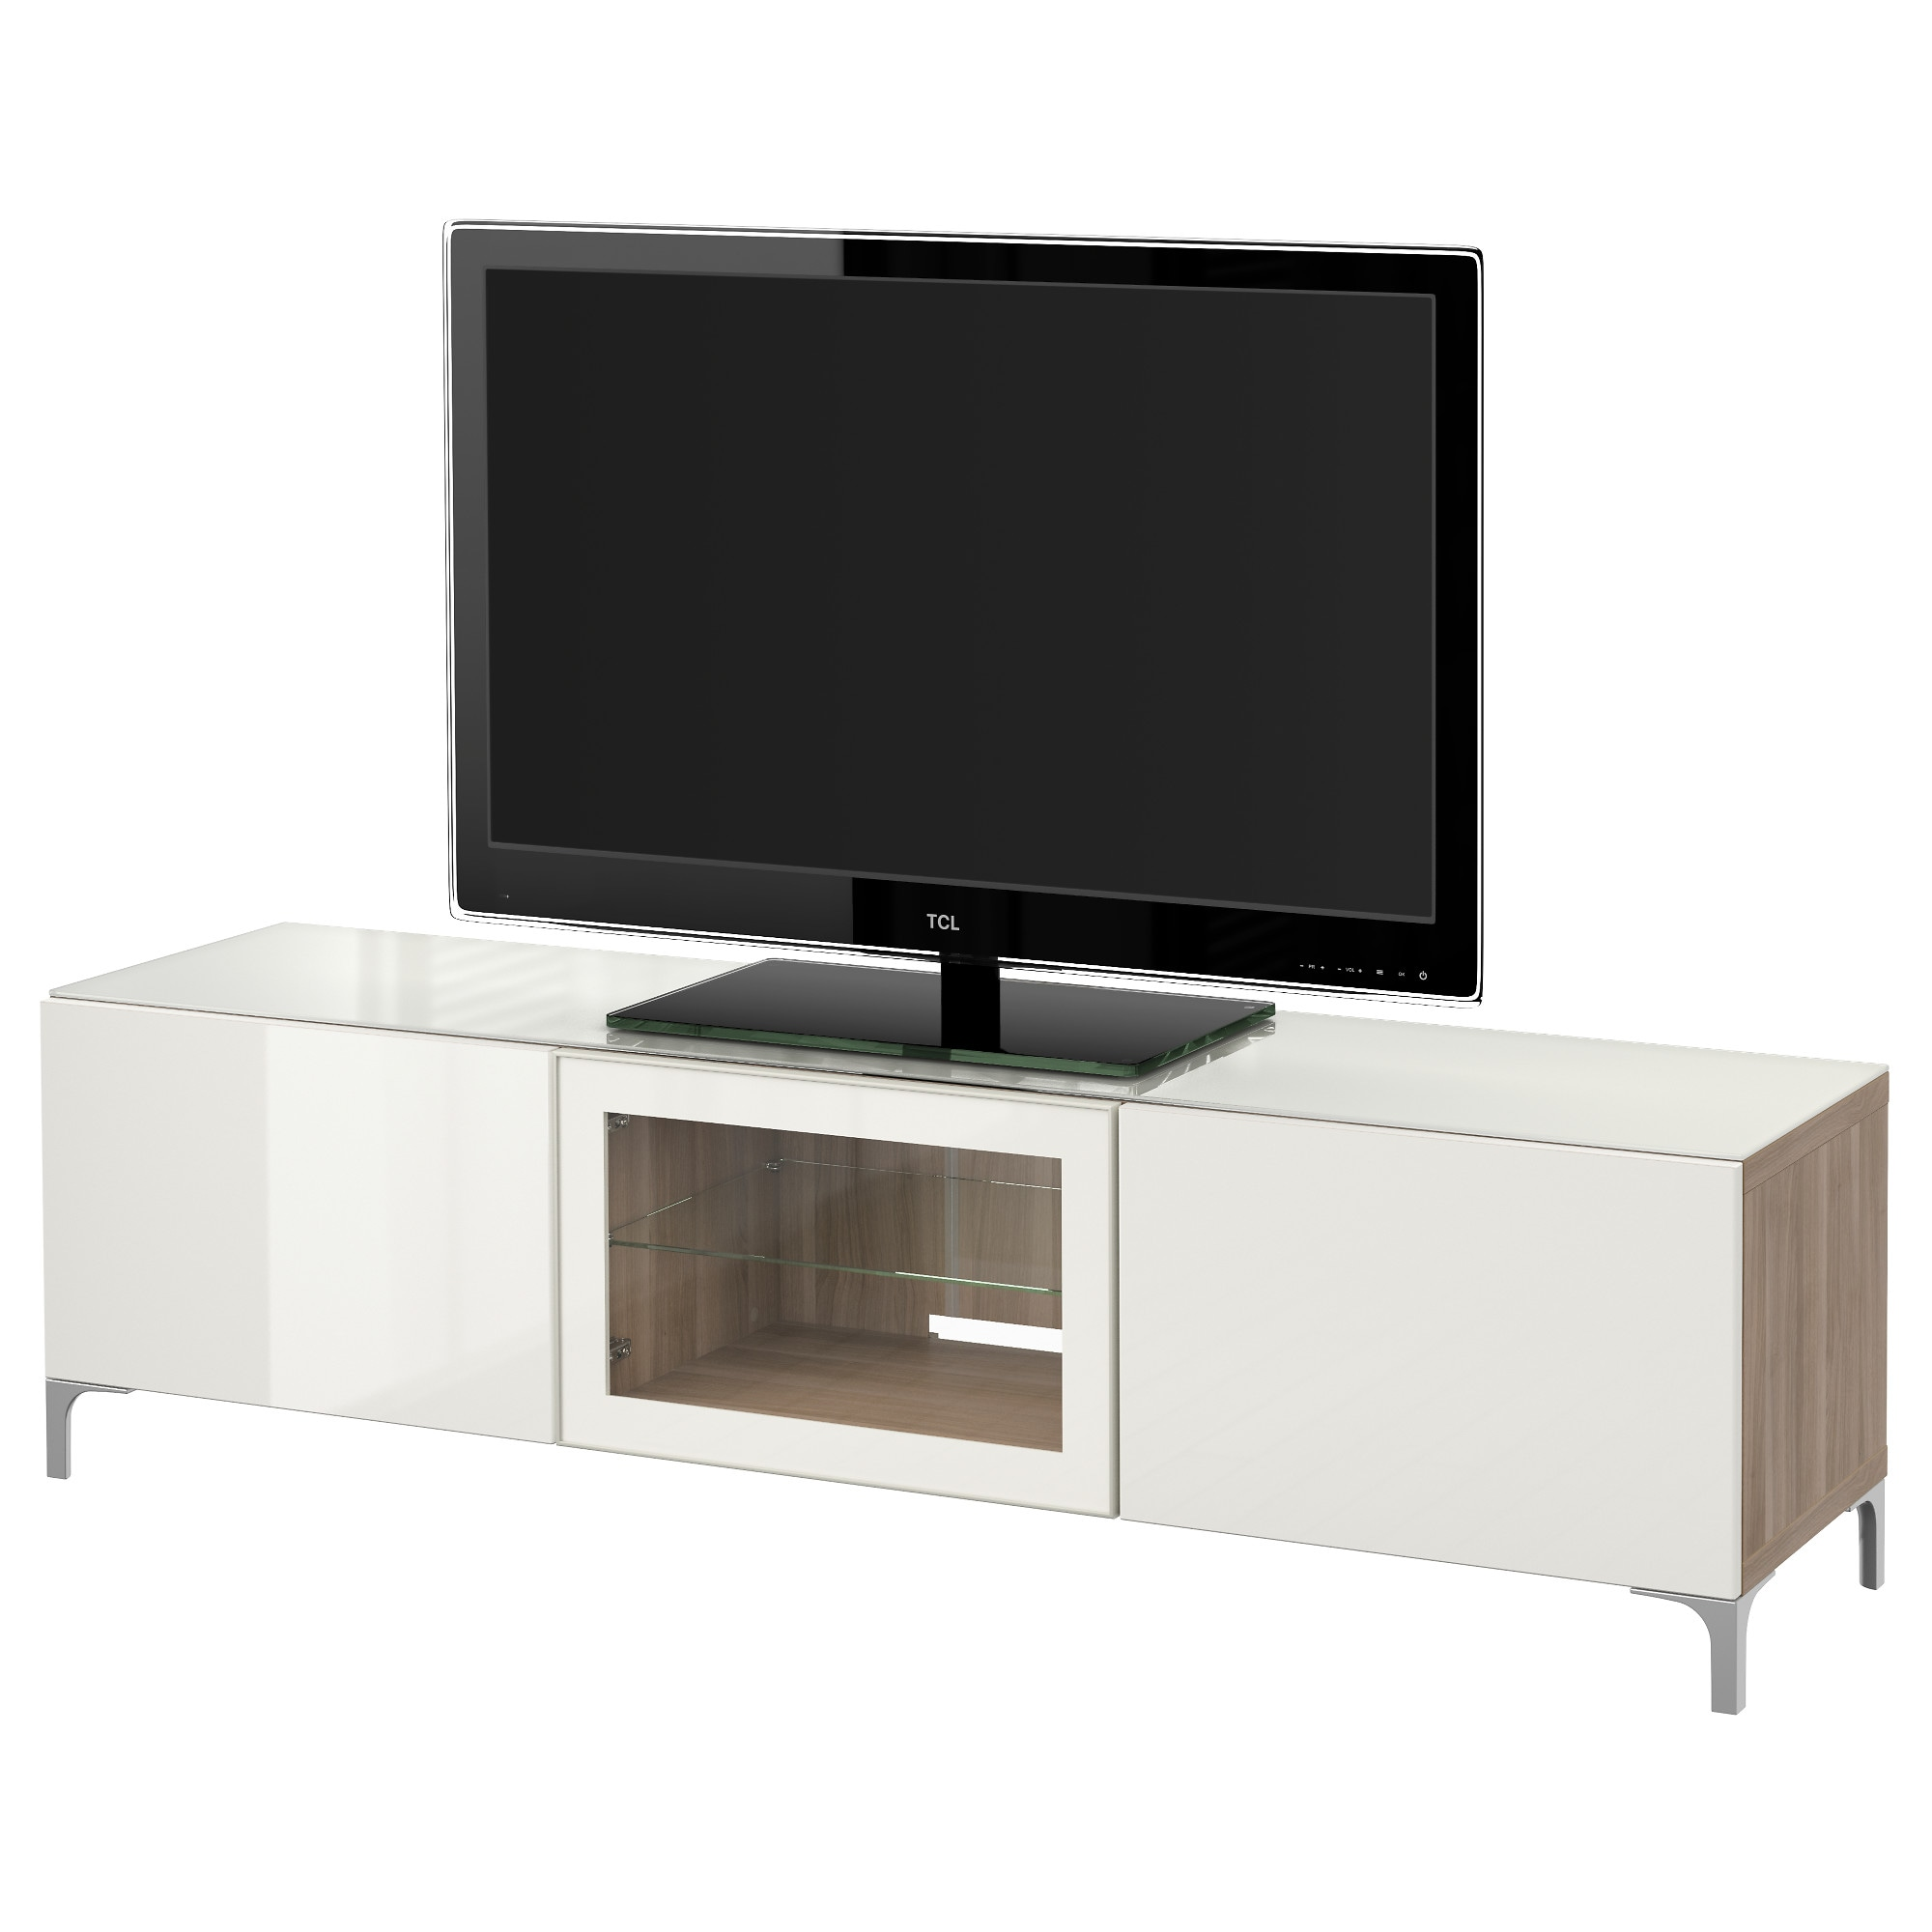 Best Tv Unit With Doors Lappviken White Clear Glass 70 7 8×15  # Meuble Tv Miami